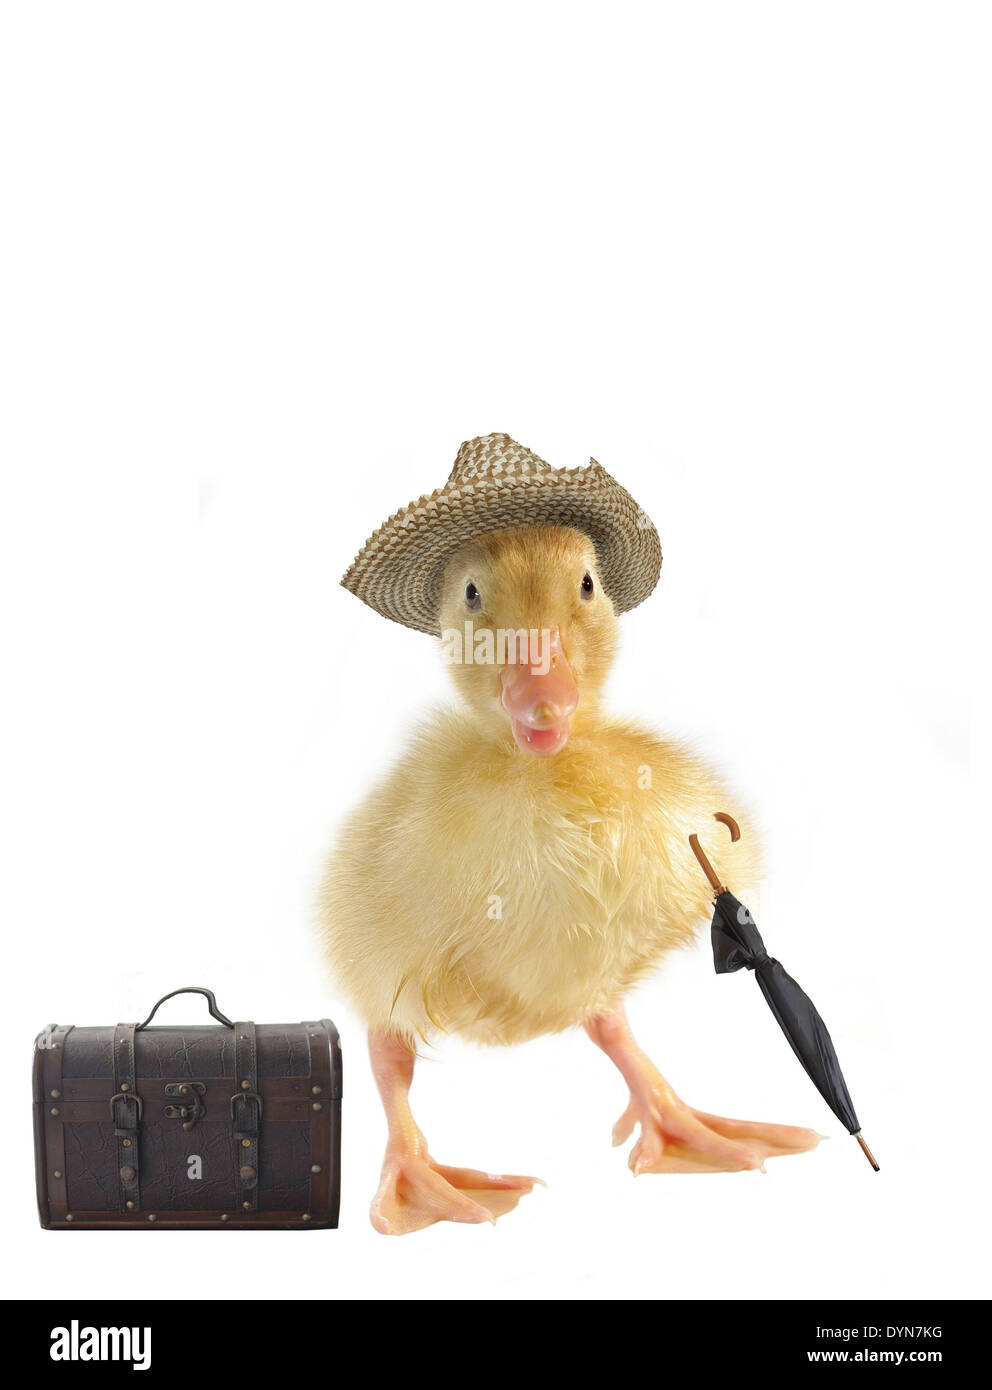 Small Duck In Straw Hat On White Background